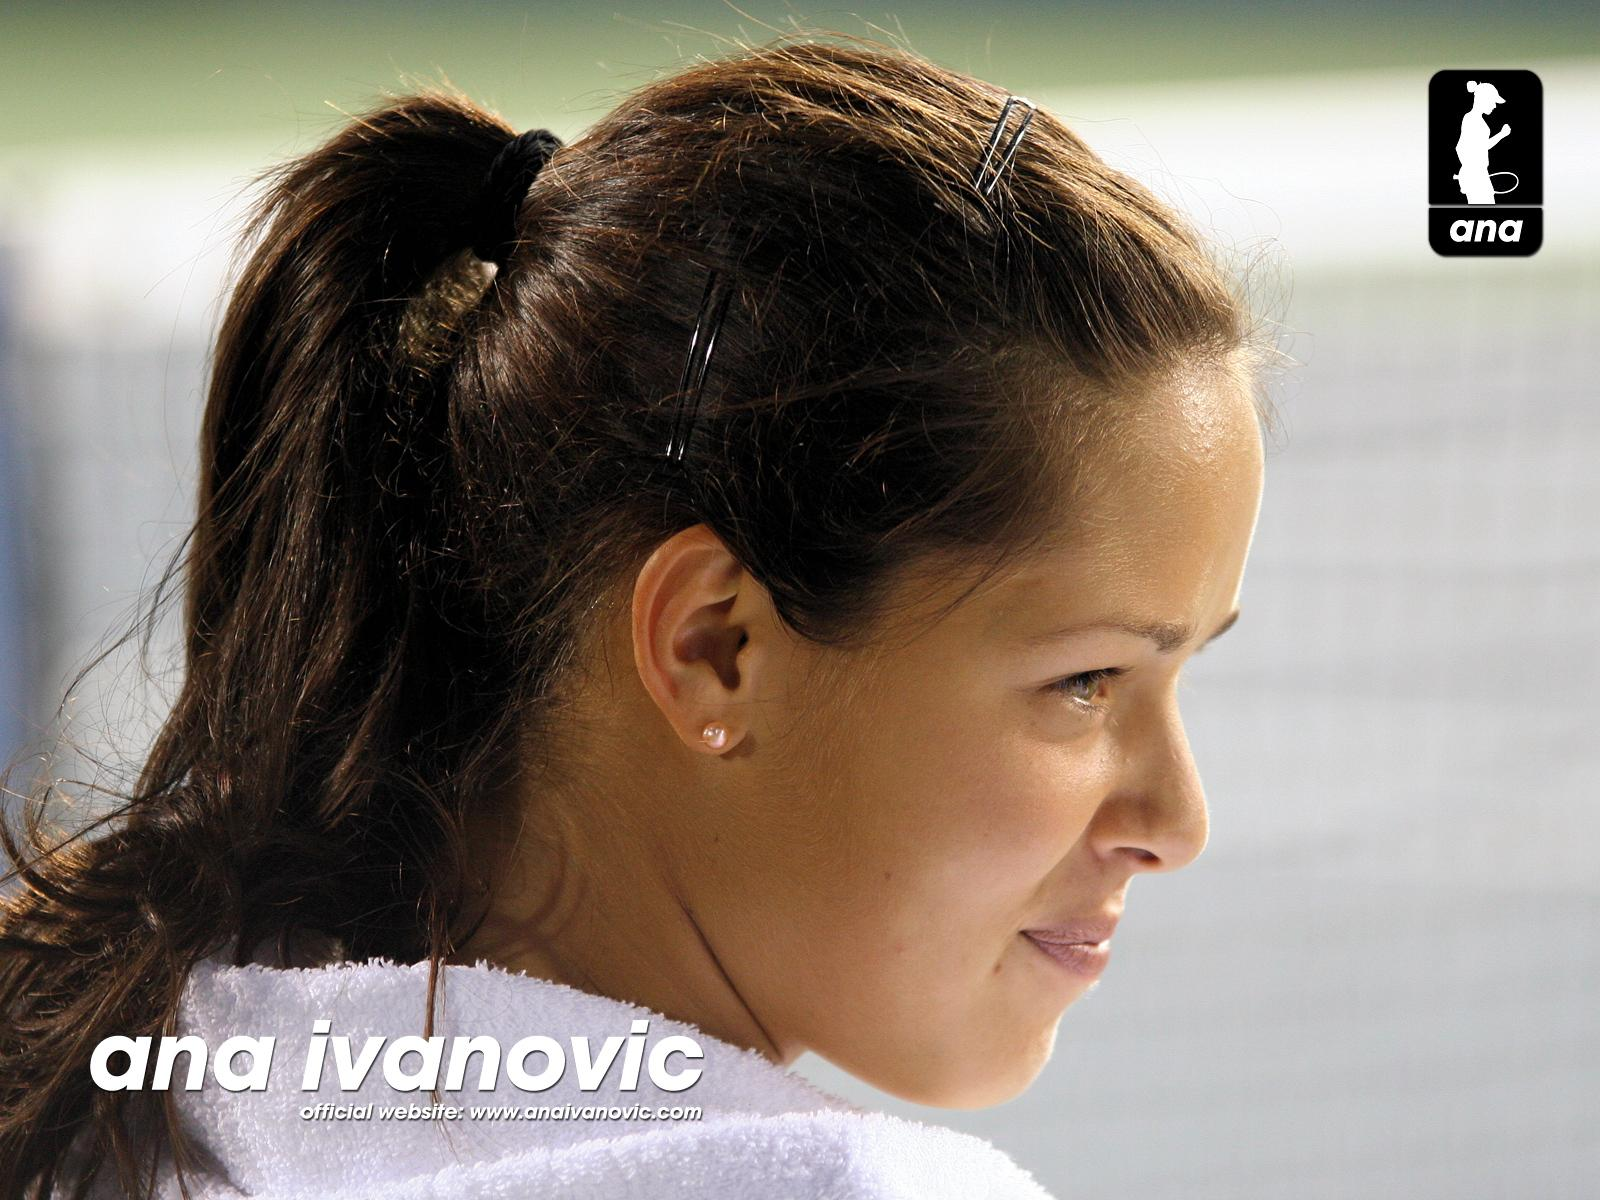 Ana Ivanovic Celebrities